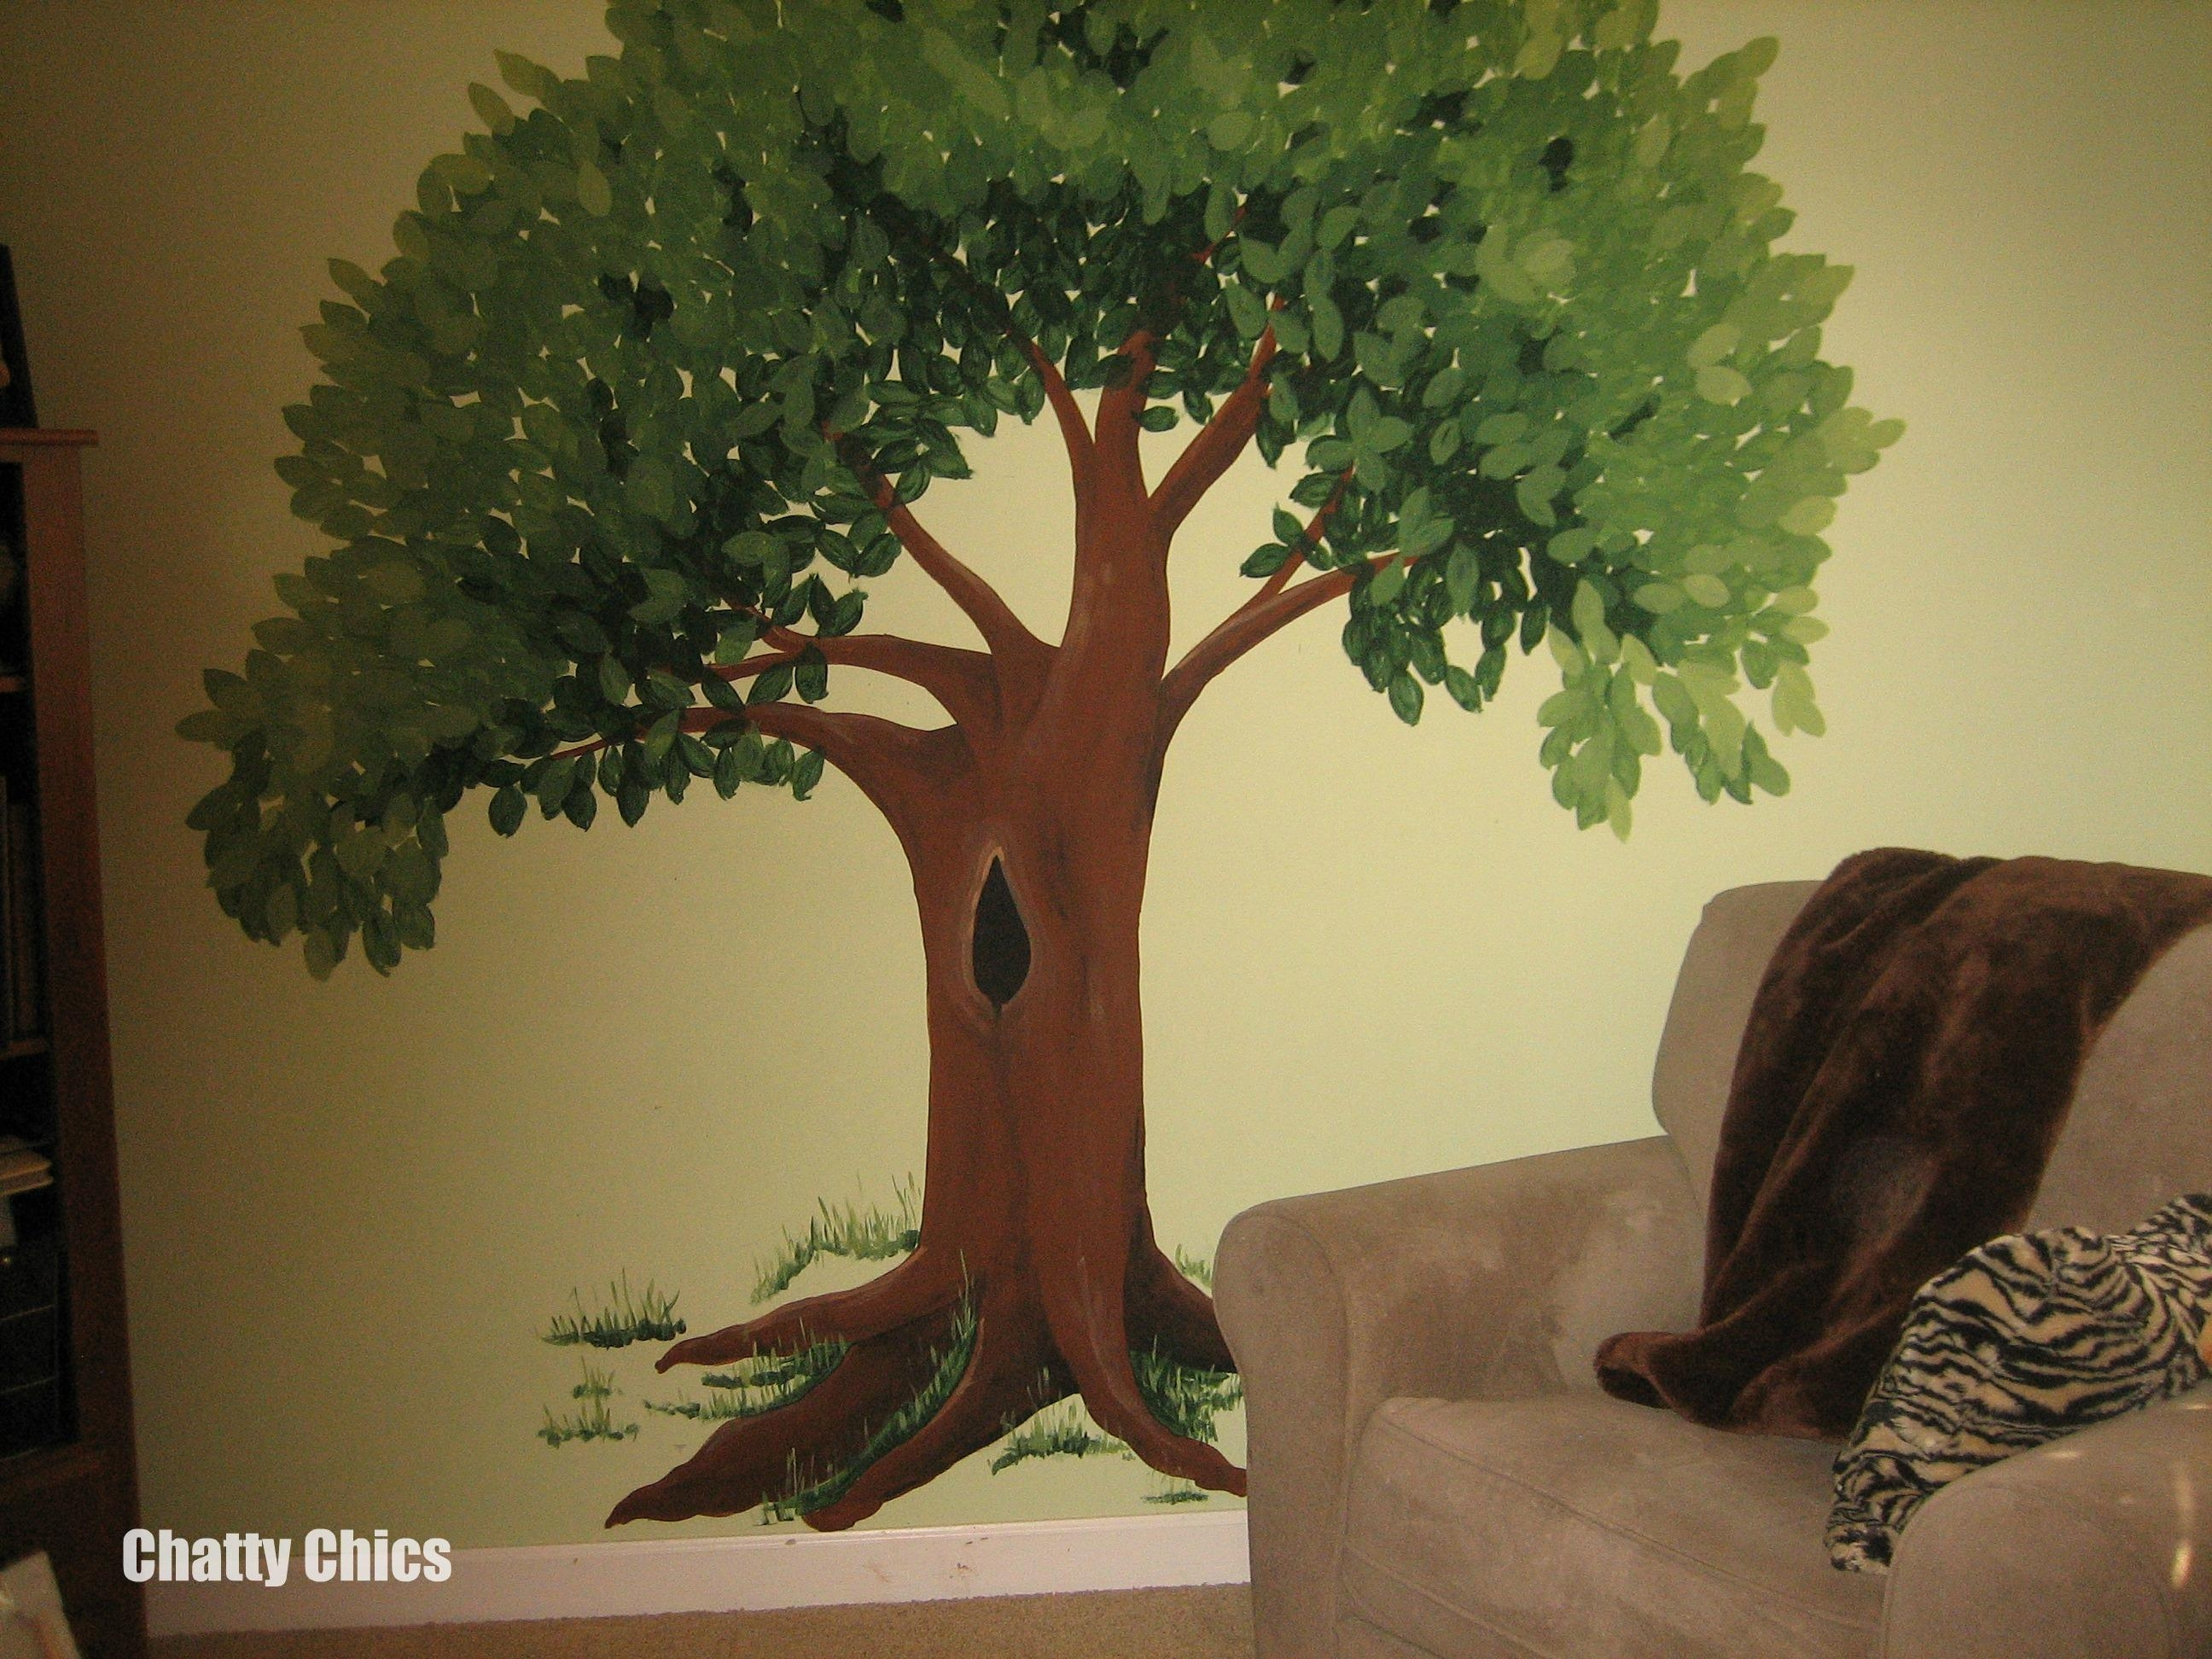 Wall Art | Chatty Chics Inside Painted Trees Wall Art (View 8 of 20)